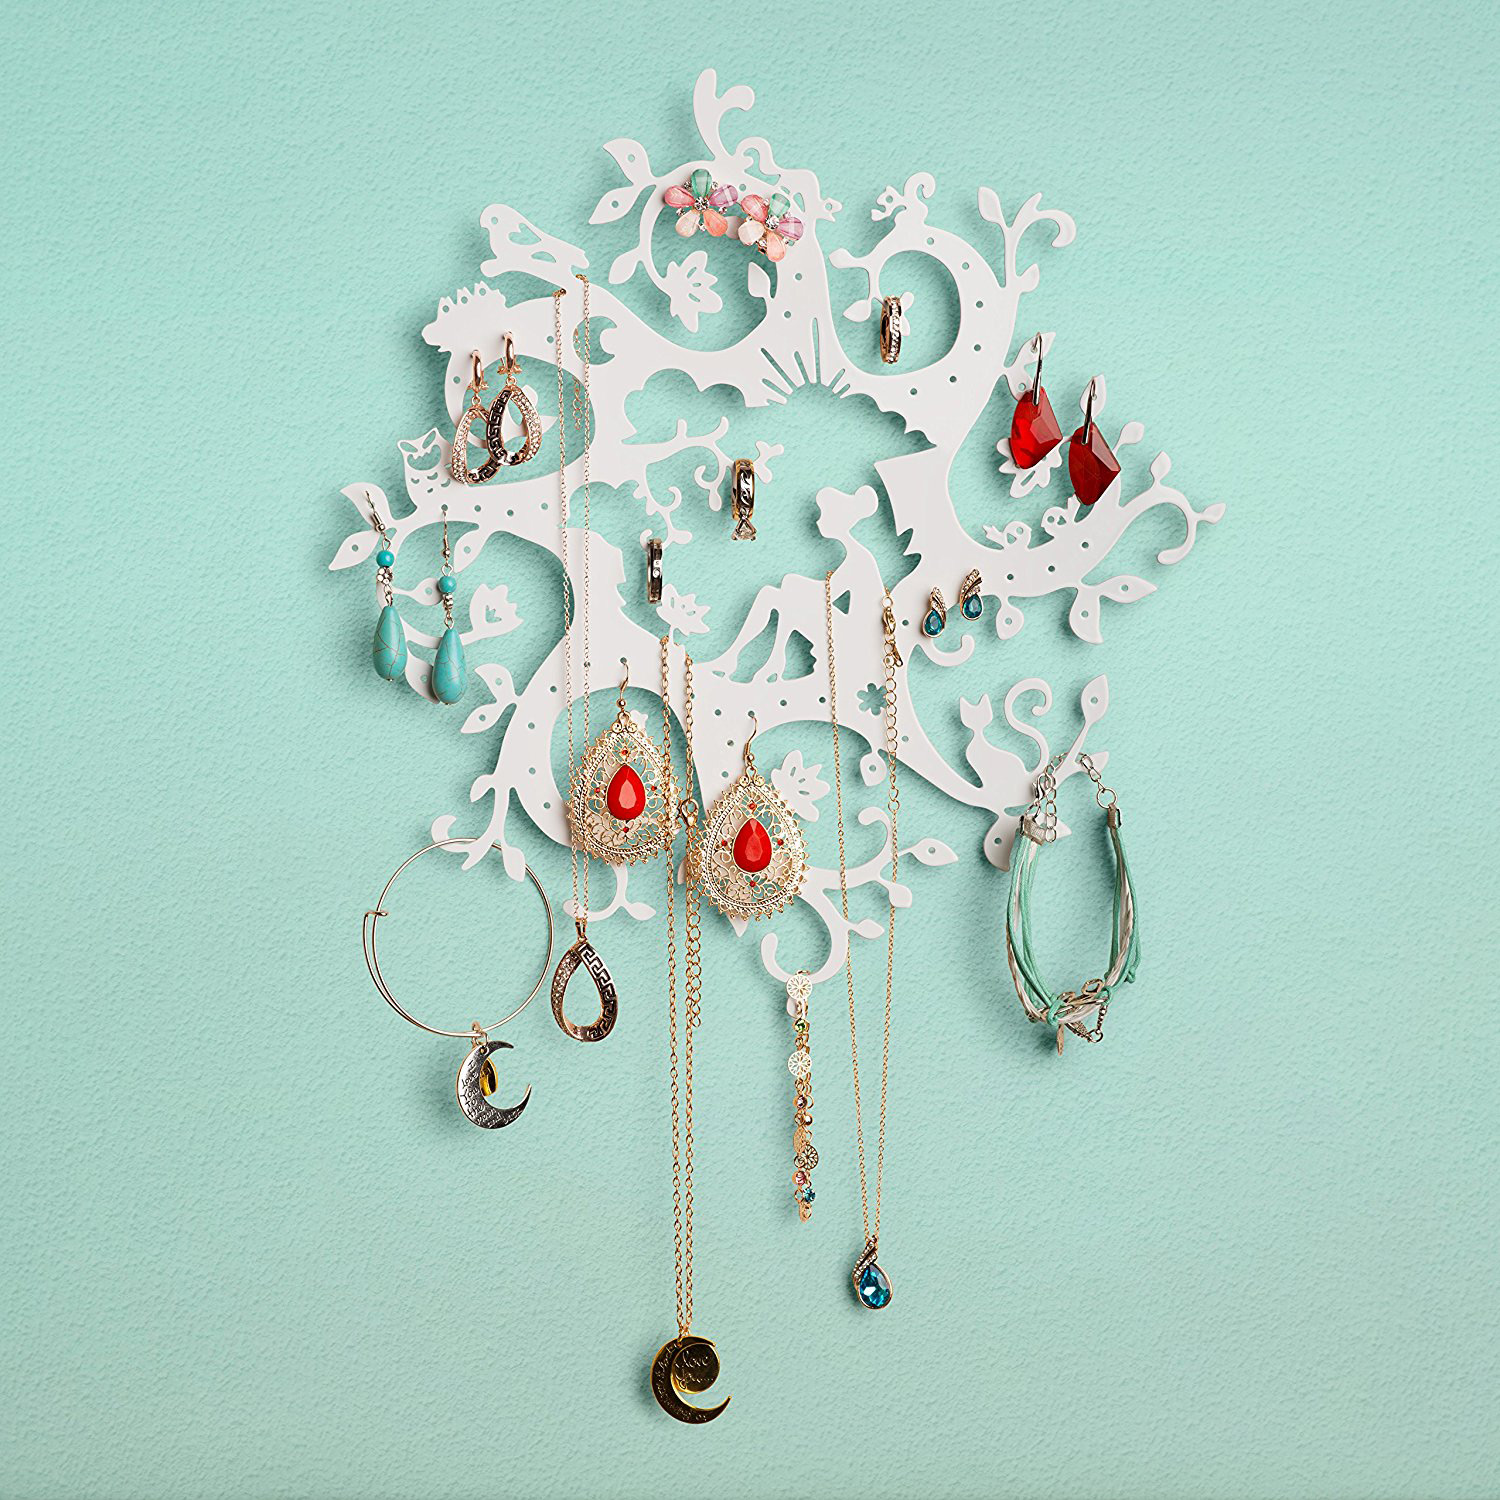 Abstract White Wall Mounted Jewelry Holder